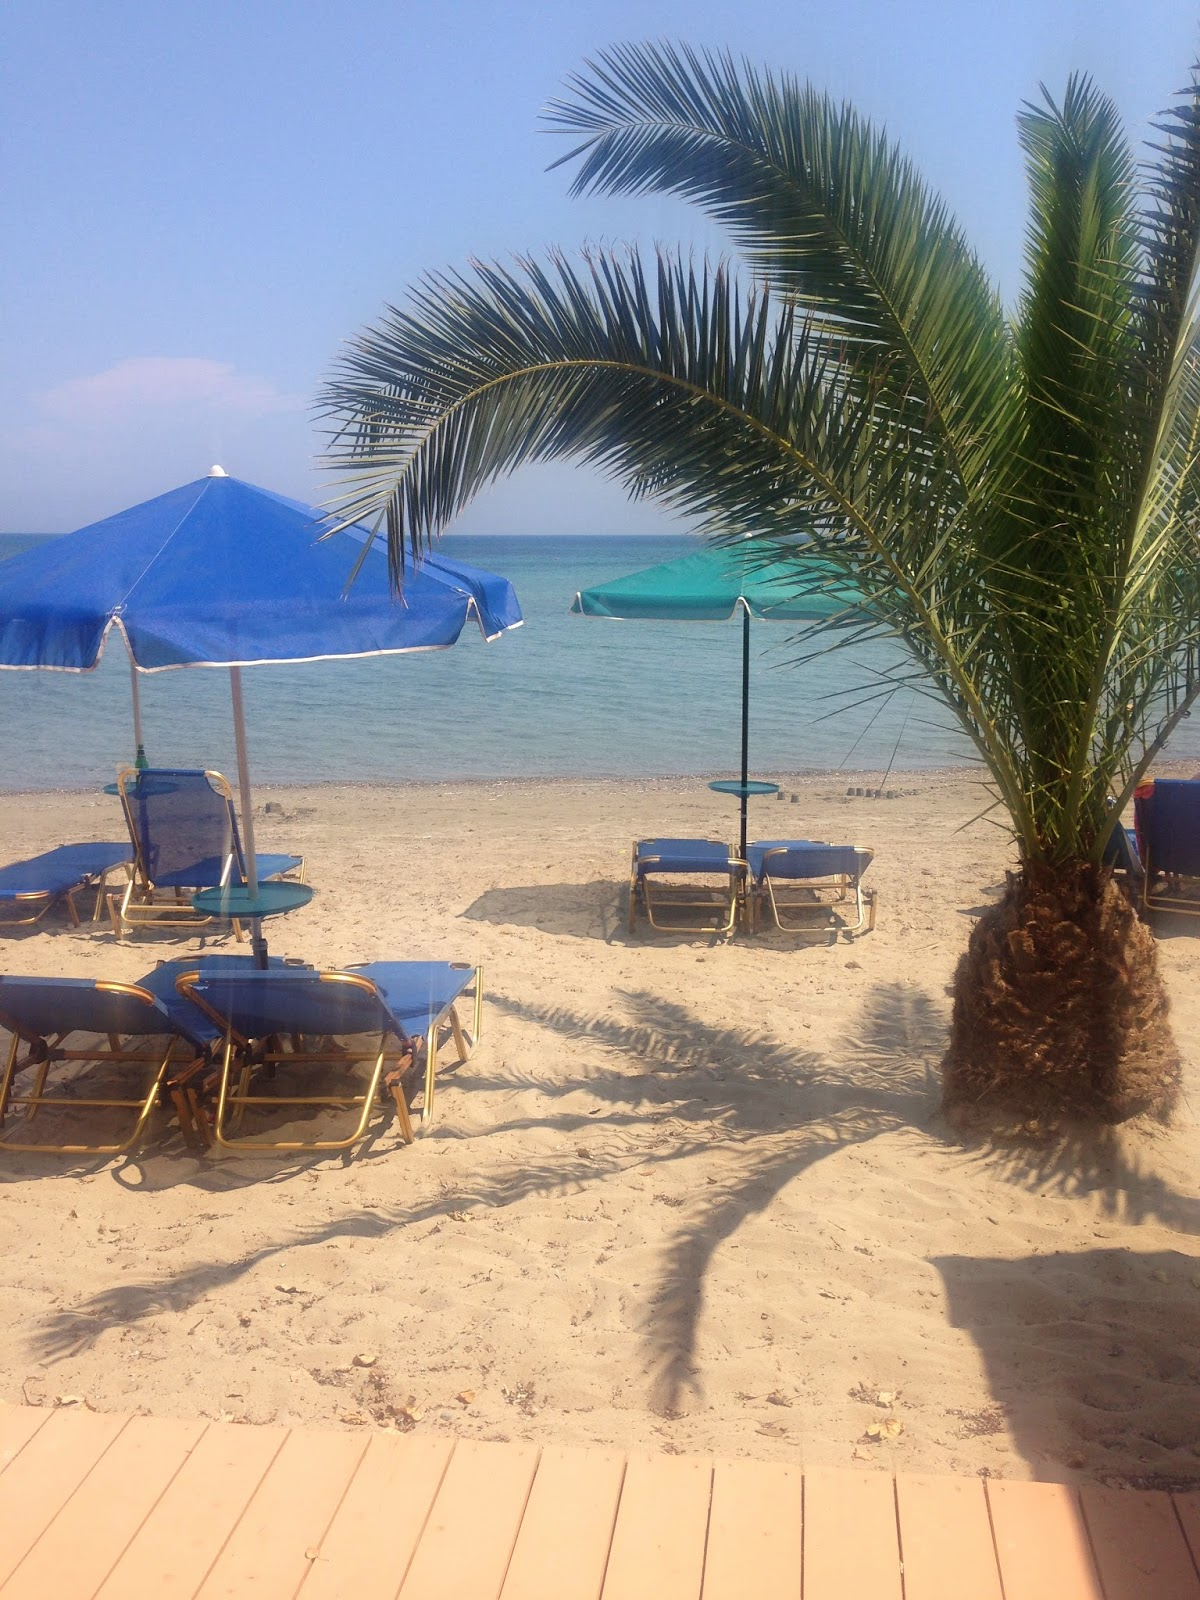 the beach of katelios, kefalonia, greece, with a palm tree and several sun loungers